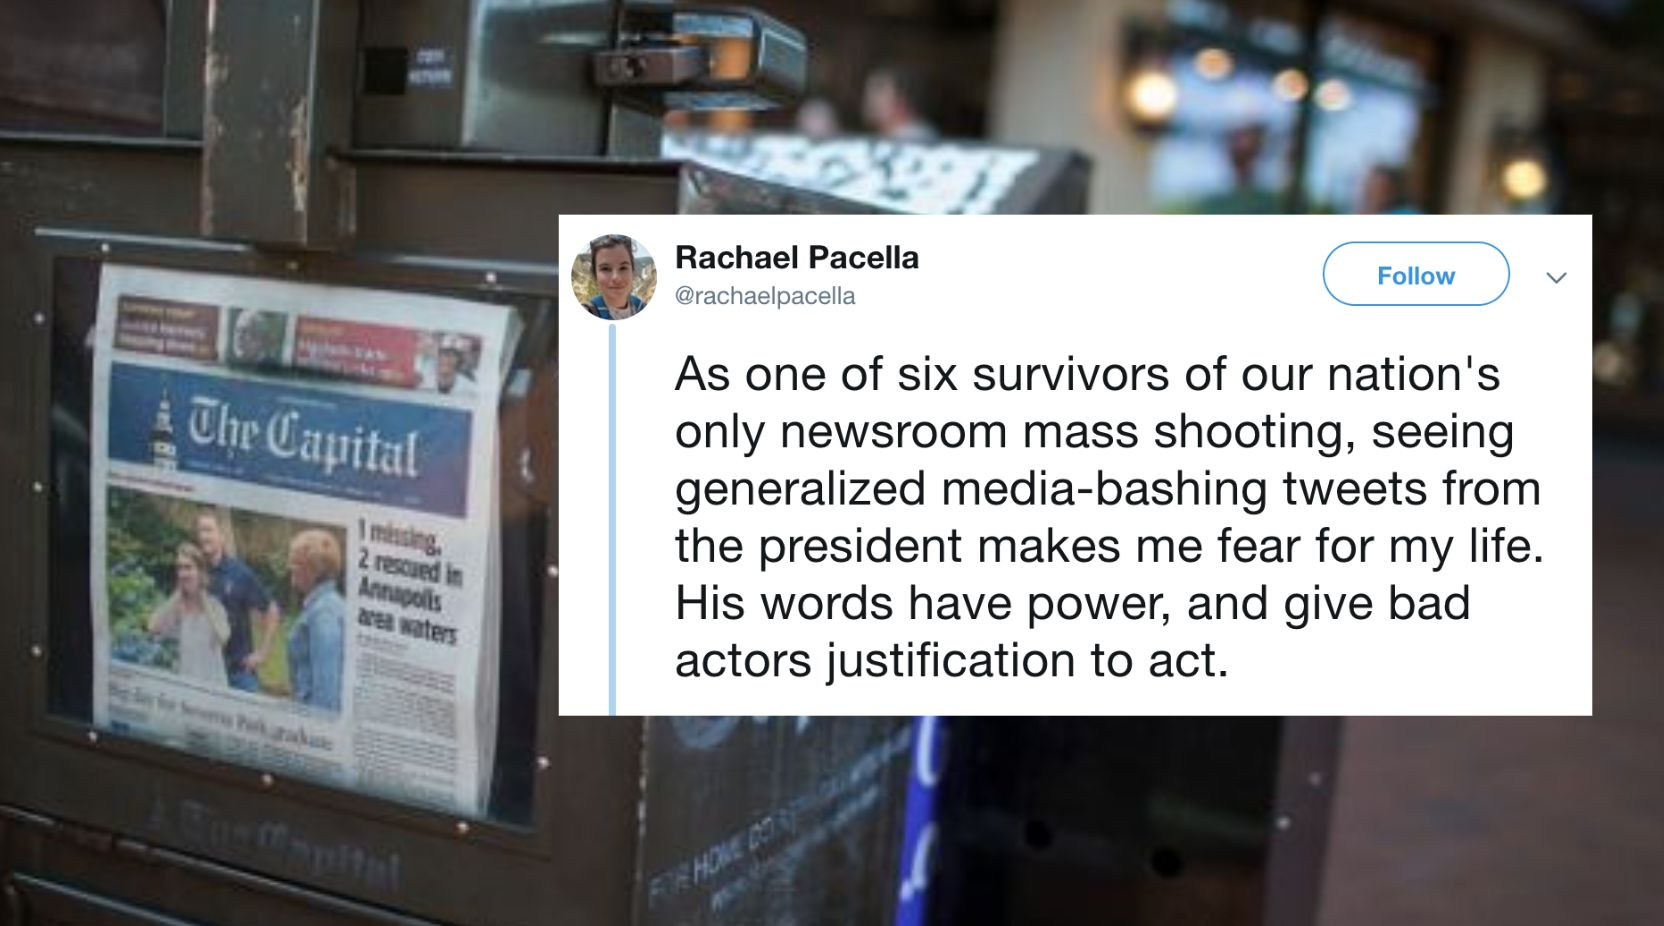 Capital Gazette Shooting Survivor: Trump's Media-Bashing Makes Me Fear For My